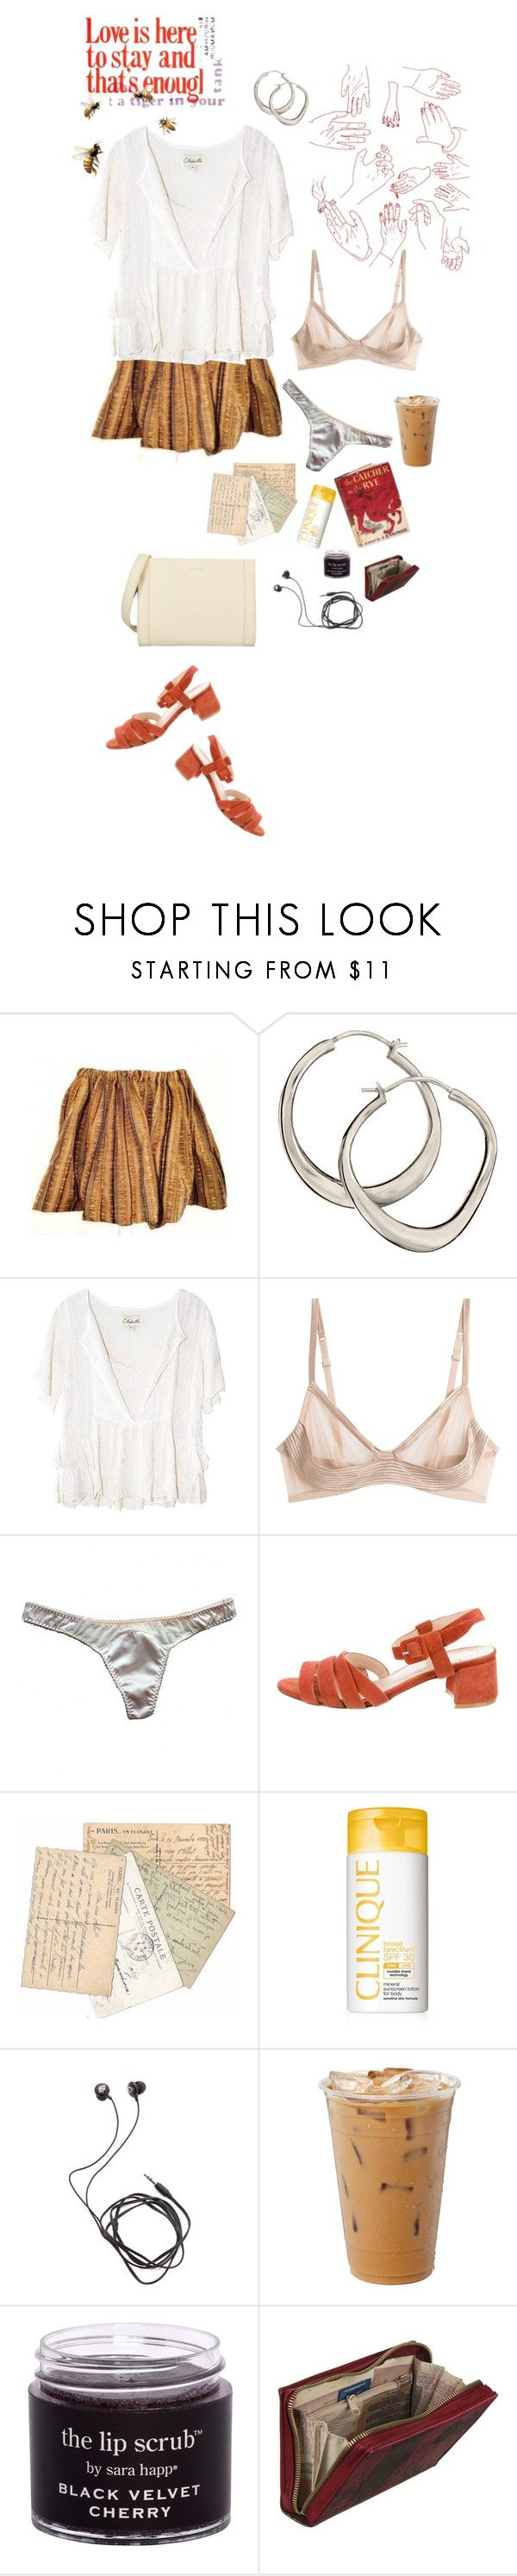 """""""i like the way that words come out your mouth"""" by sarahelisabetha ❤ liked on Polyvore featuring Dinny Hall, Cleobella, La Perla, Agent Provocateur, Maryam Nassir Zadeh, Edition, Clinique, Diane Von Furstenberg and Matt & Nat"""